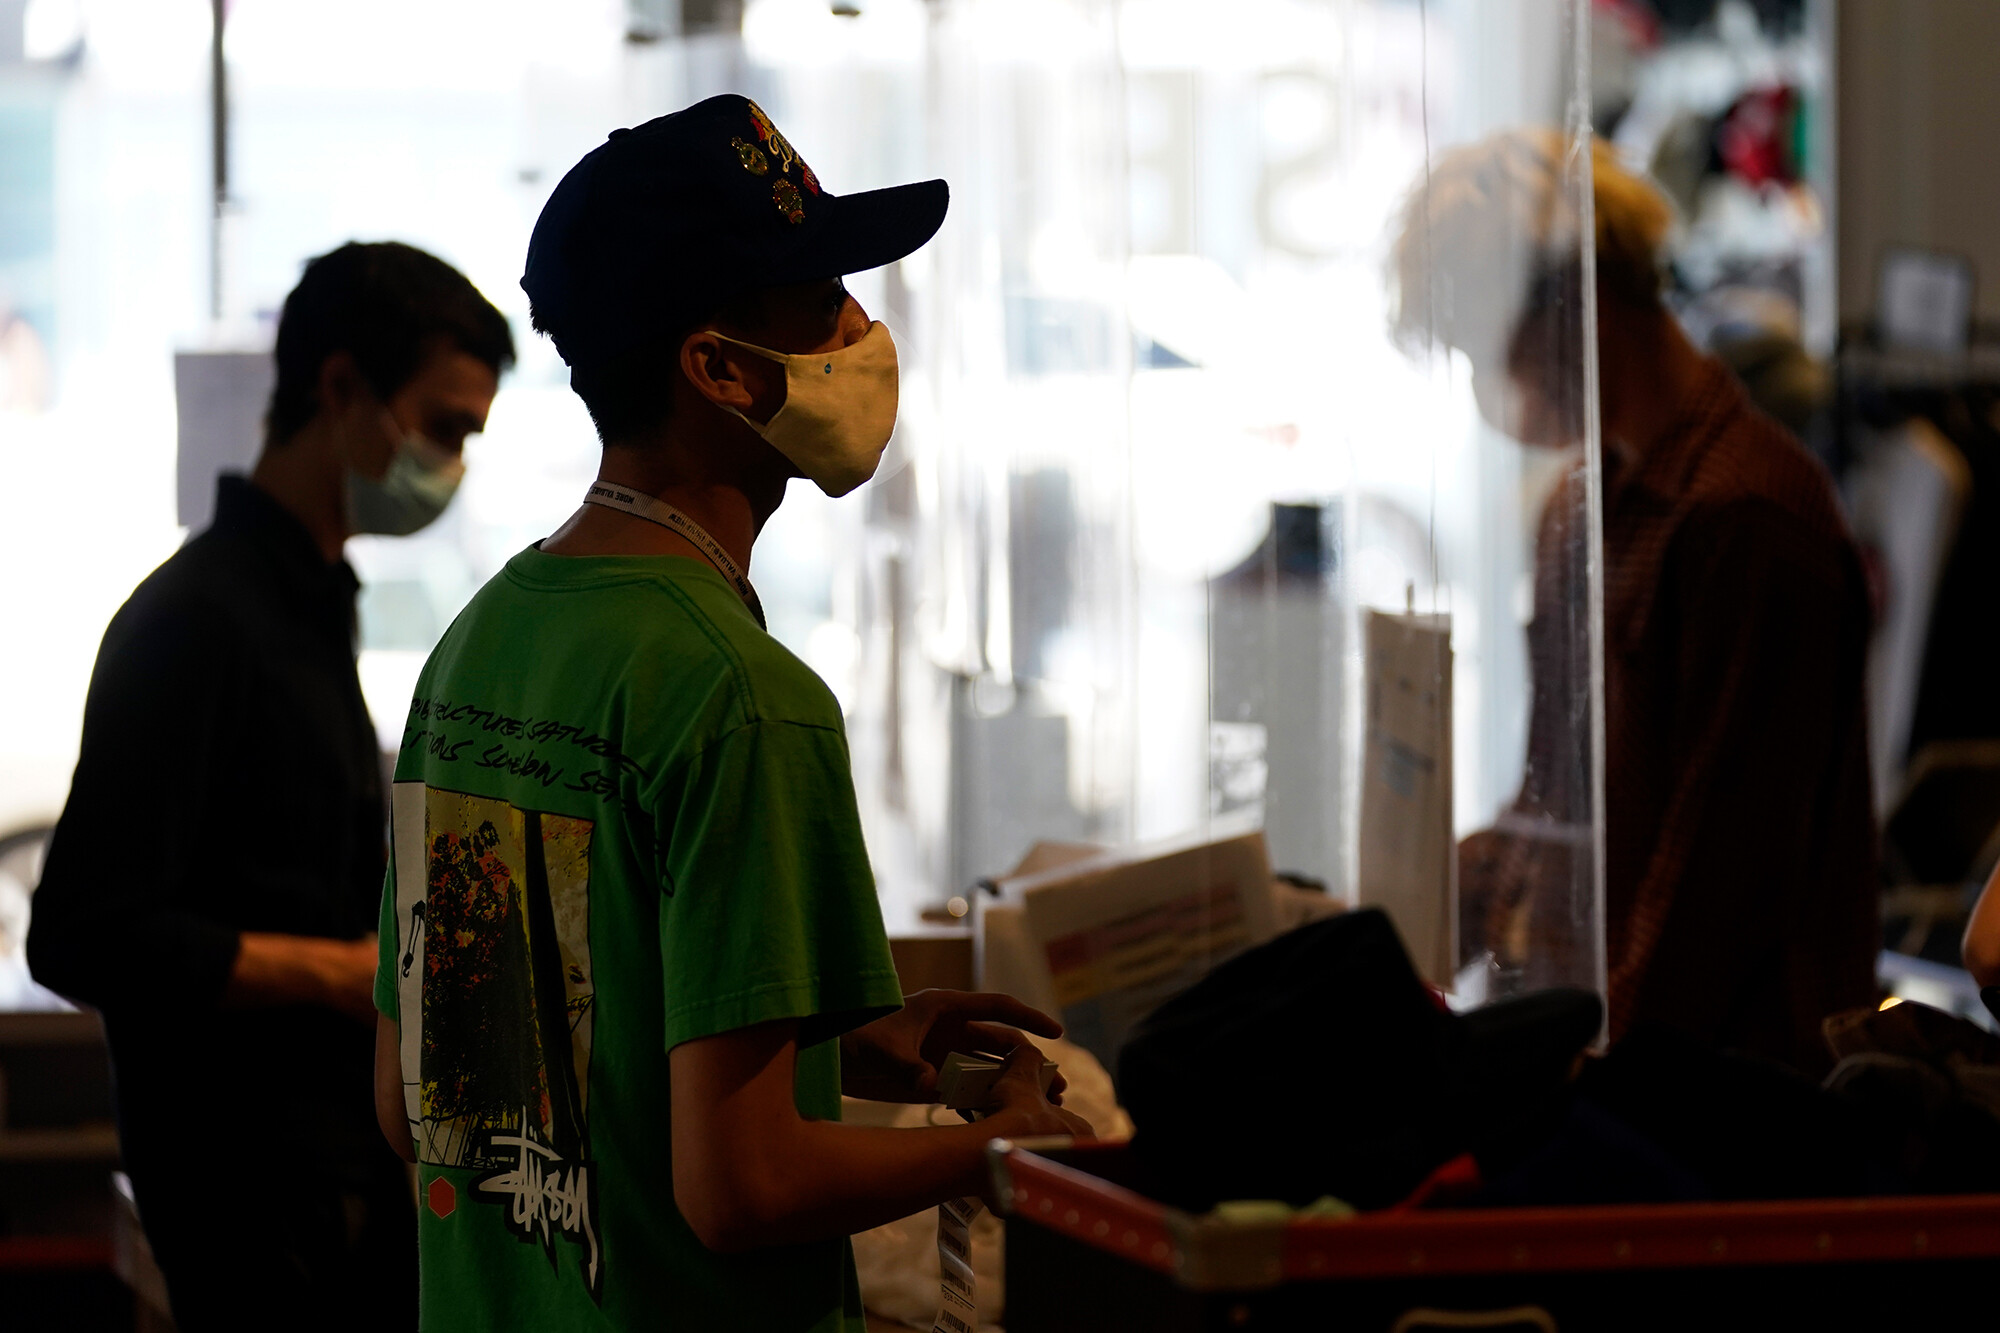 <i>Marcio Jose Sanchez/AP</i><br/>Stores are re-evaluating their mask policies after the US Centers for Disease Control and Prevention updated guidance July 27 to recommend that fully vaccinated people wear masks indoors in areas with high transmission of Covid-19